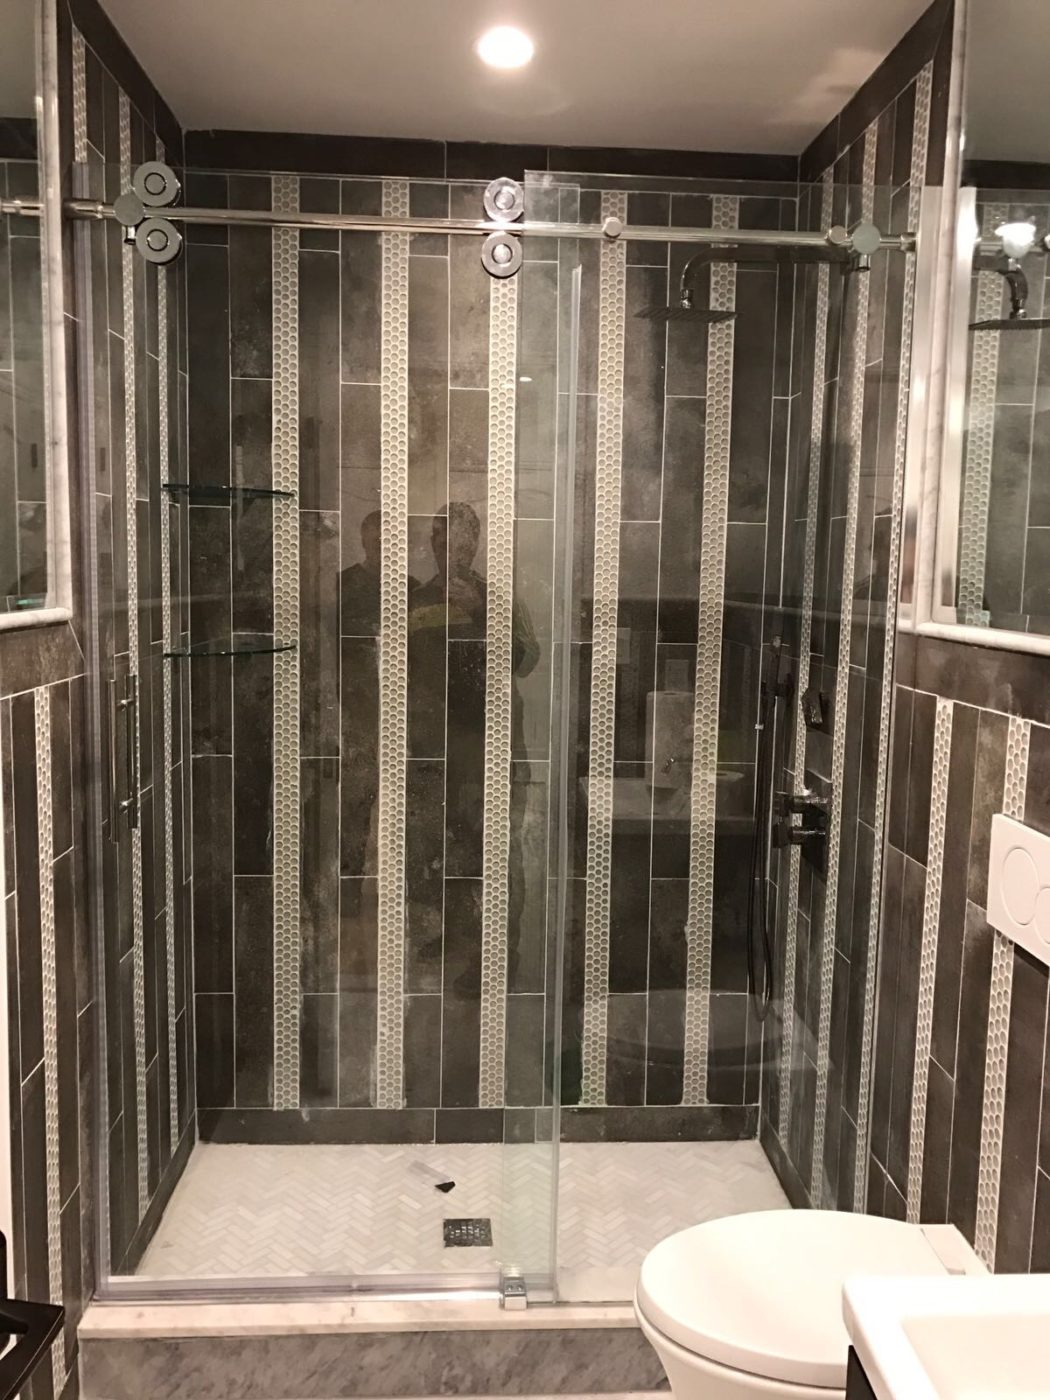 Shower Door Repair Brooklyn Domino Window Repair Inc